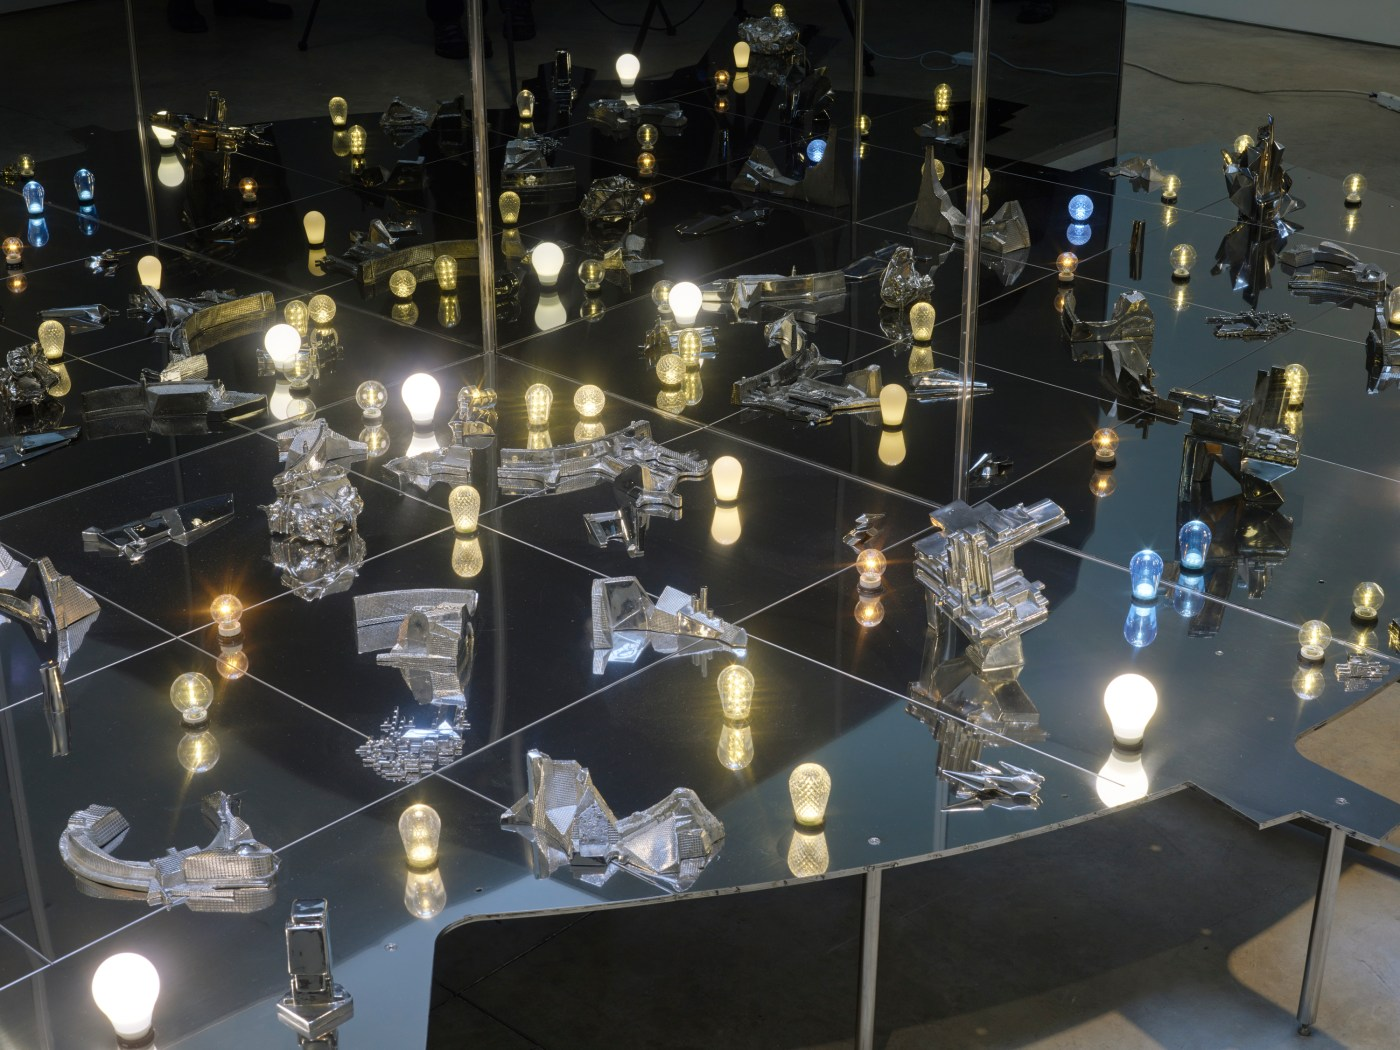 LEE BUL Civitas Solis IV (detail), 2016 two-way mirror, cast stainless steel, polished stainless steel, LED lights, electronic wiring, aluminum, and stainless-steel base 55.12 x 78.74 x 78.74 inches 140 x 200 x 200 cm Courtesy the artist and Lehmann Maupin, New York, Hong Kong, and Seoul.